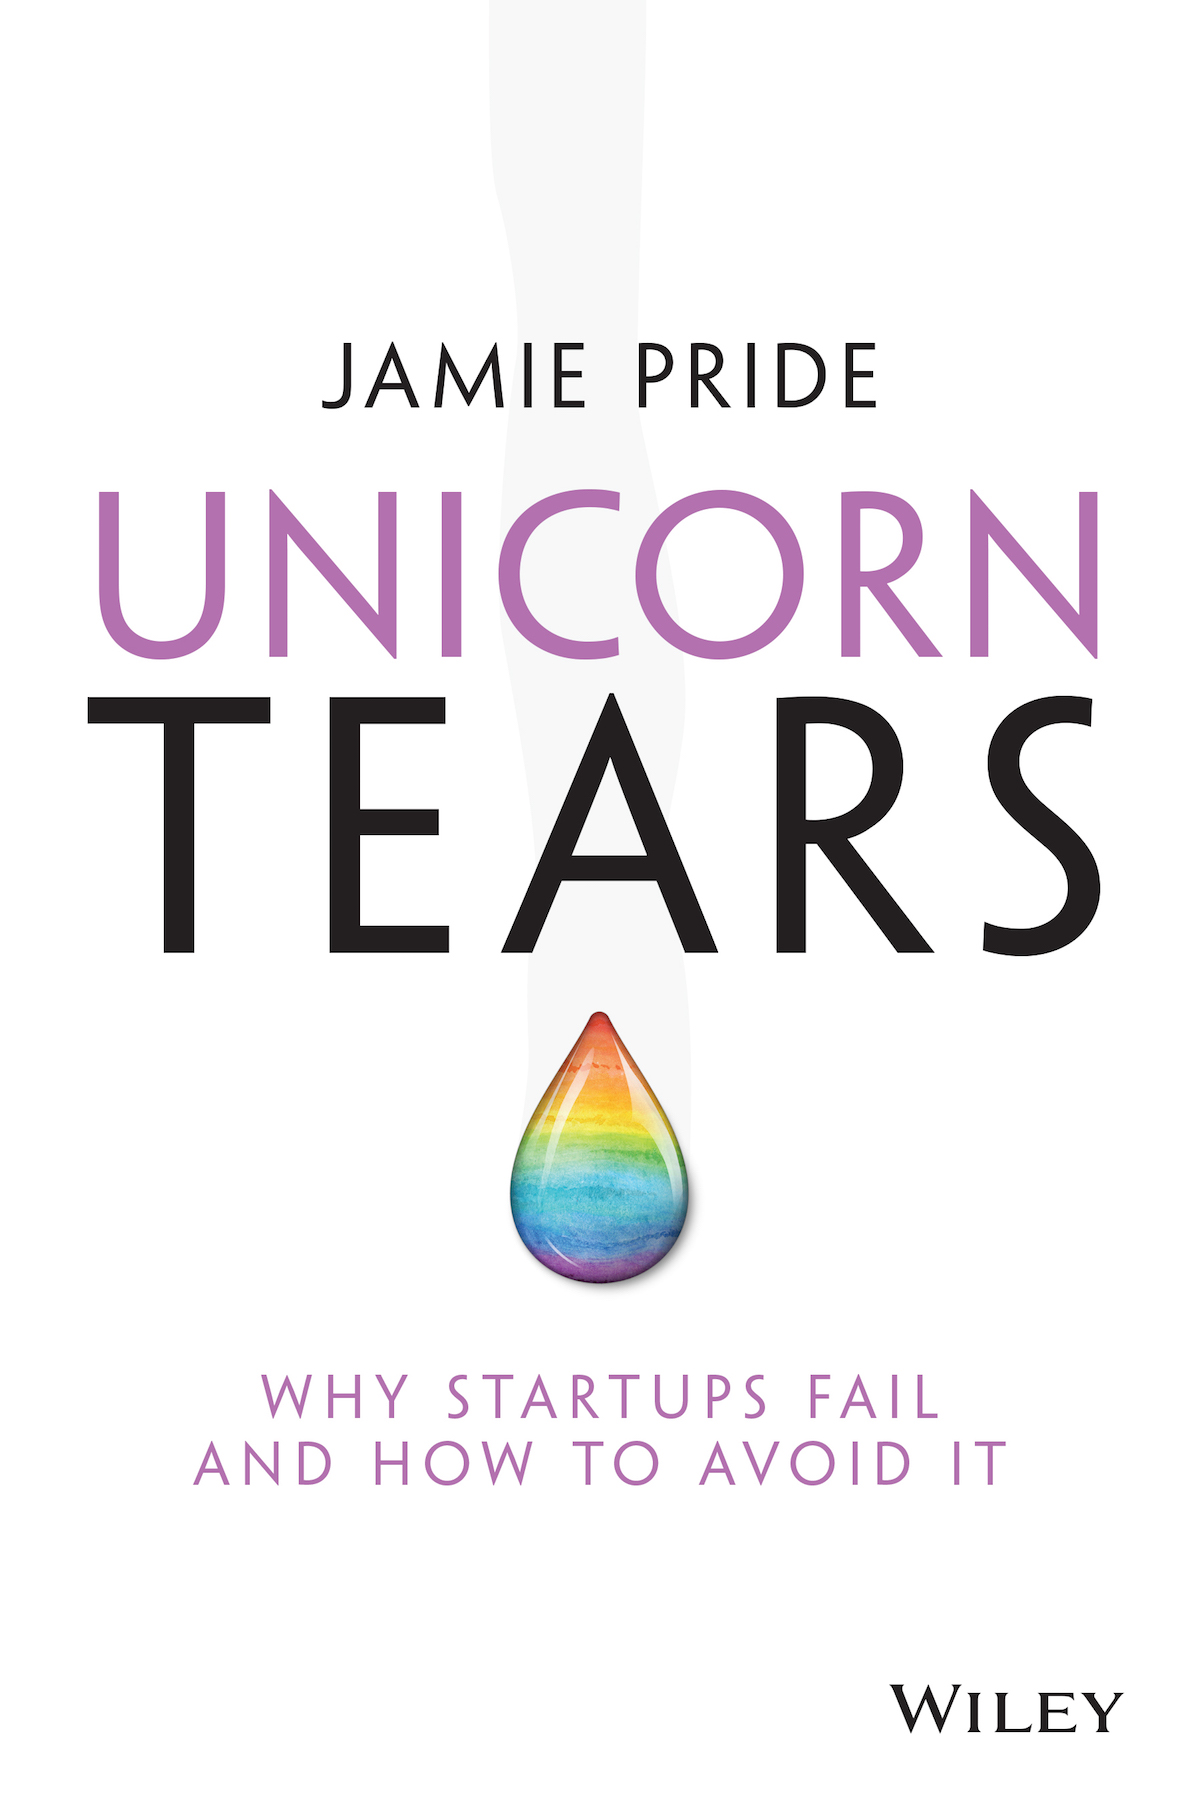 Unicorn Tears: Why startups fail and how to avoid it